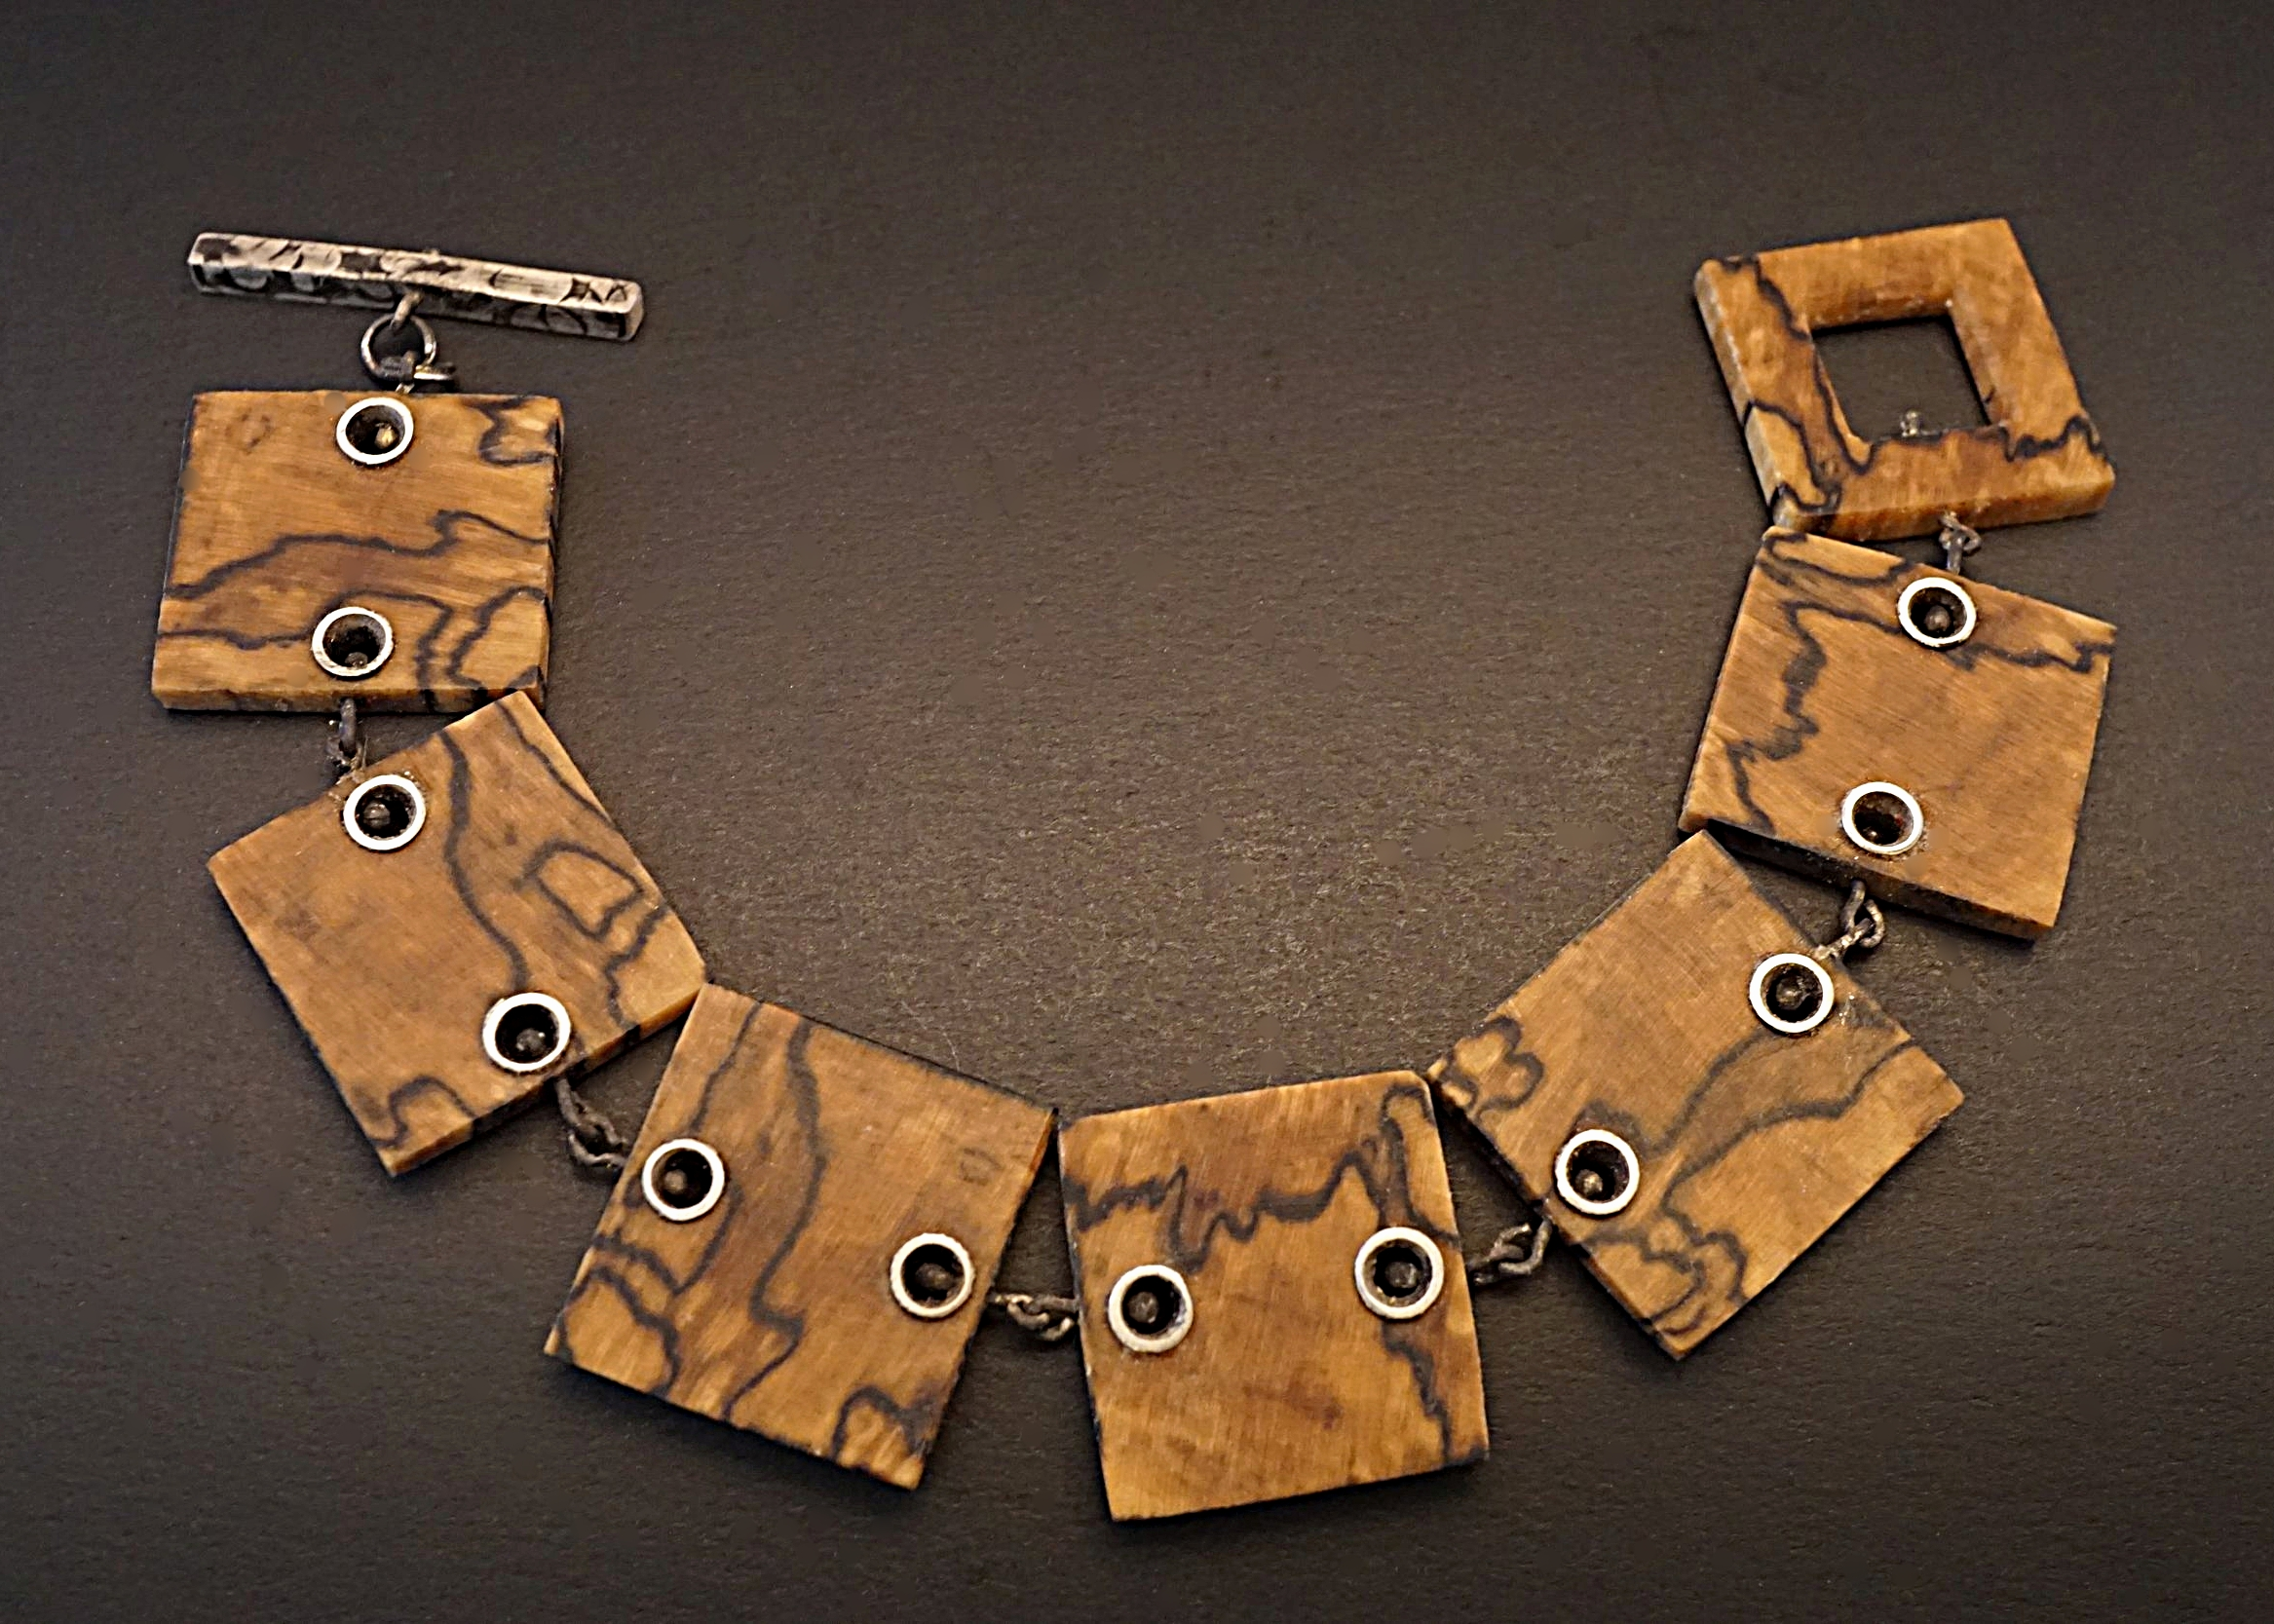 Hand carved spalted hackberry wood links with sterling silver rivets, links, and toggle